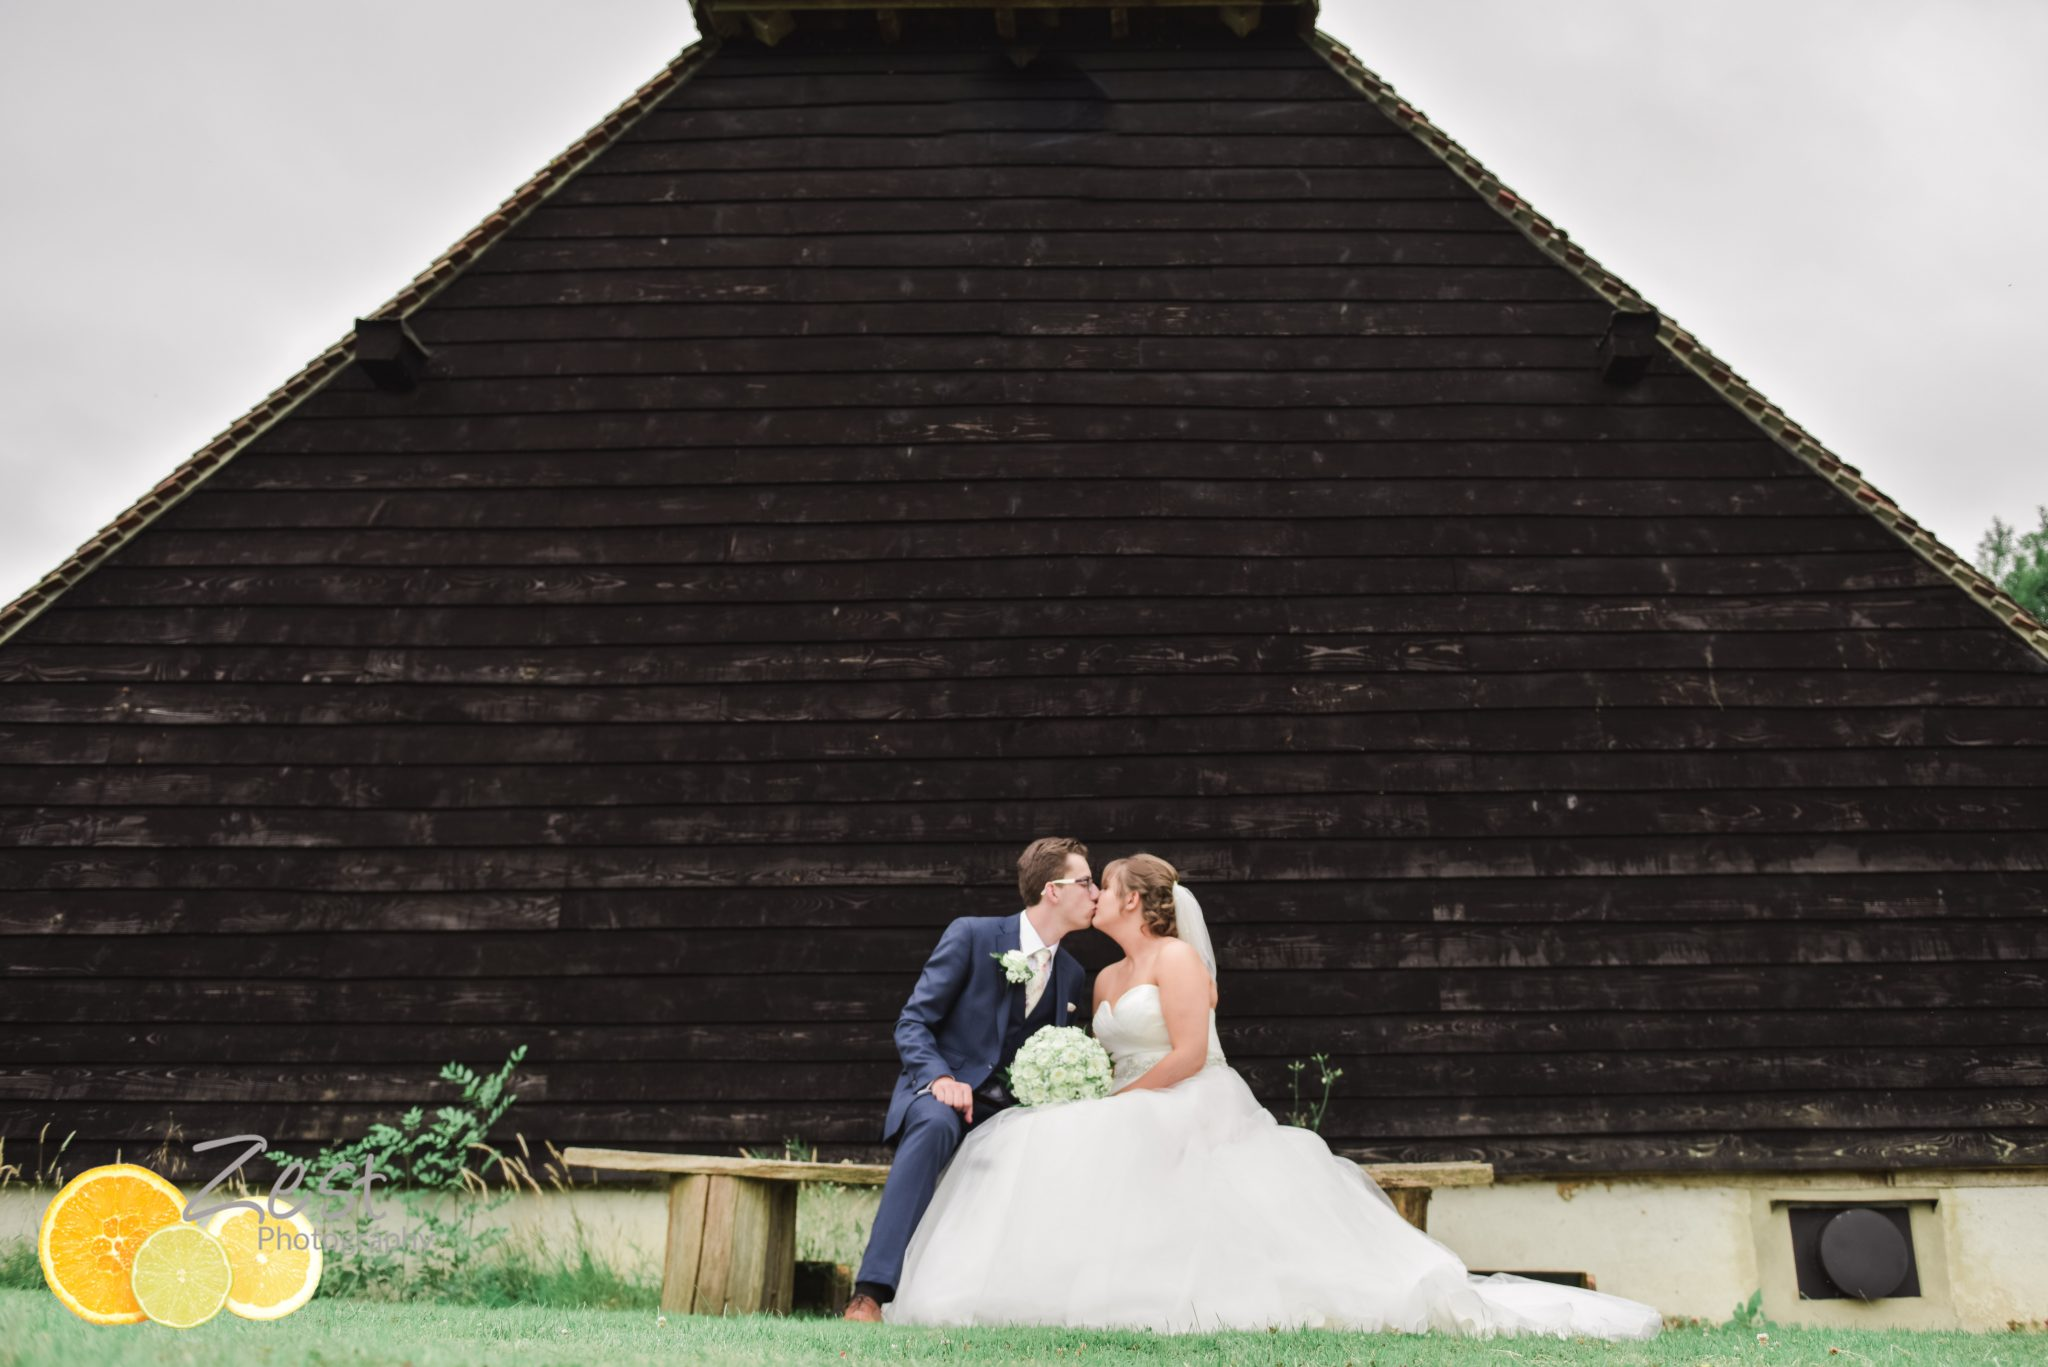 Bride and groom at guildings barn